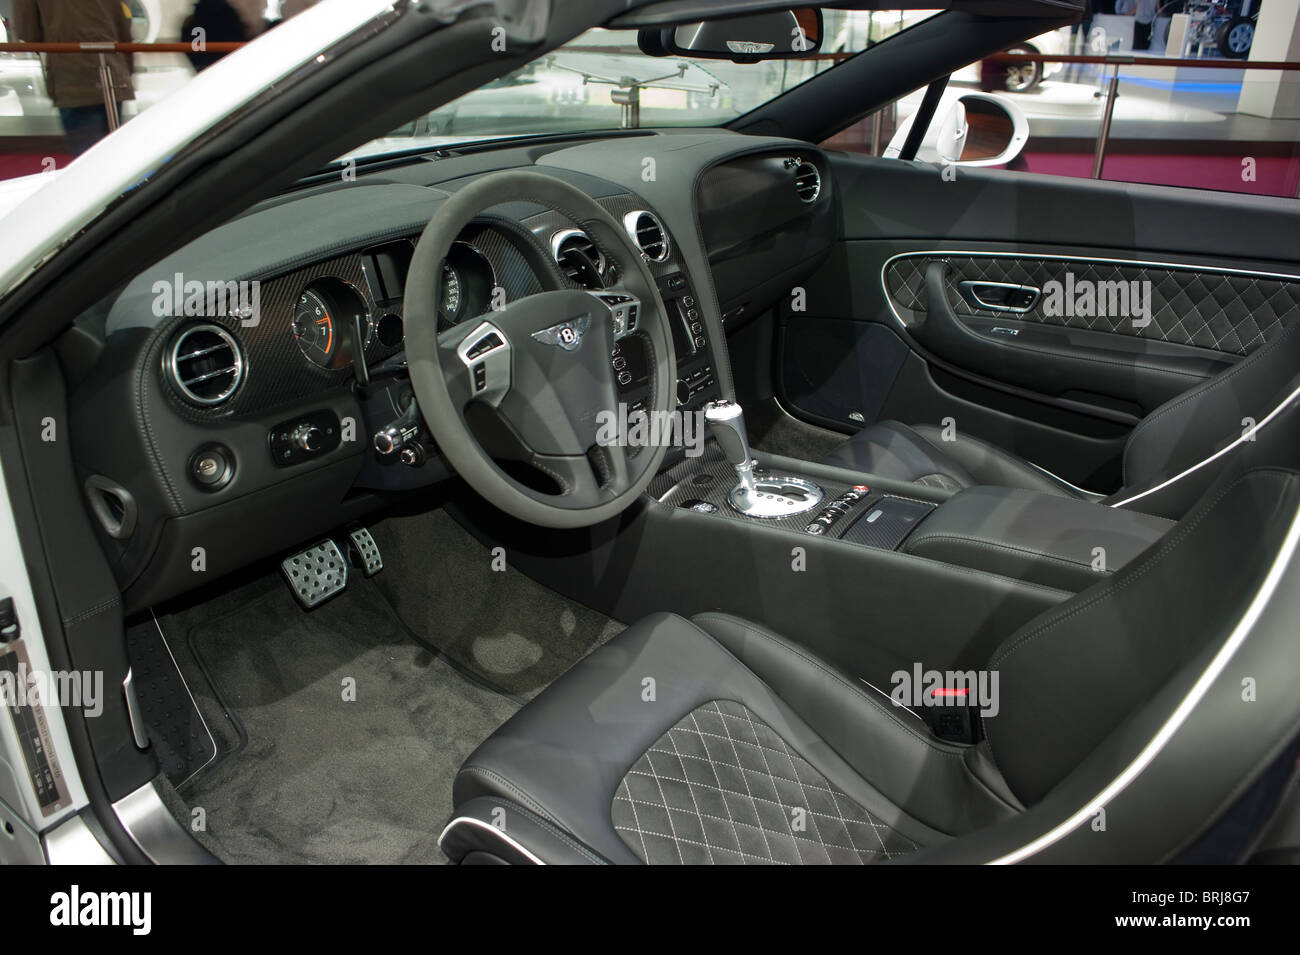 Paris, France, Paris Car Show, Bentley, Luxury Sedans, Continental Flying, Inside Dashboard, Detail, Steering Wheel Stock Photo